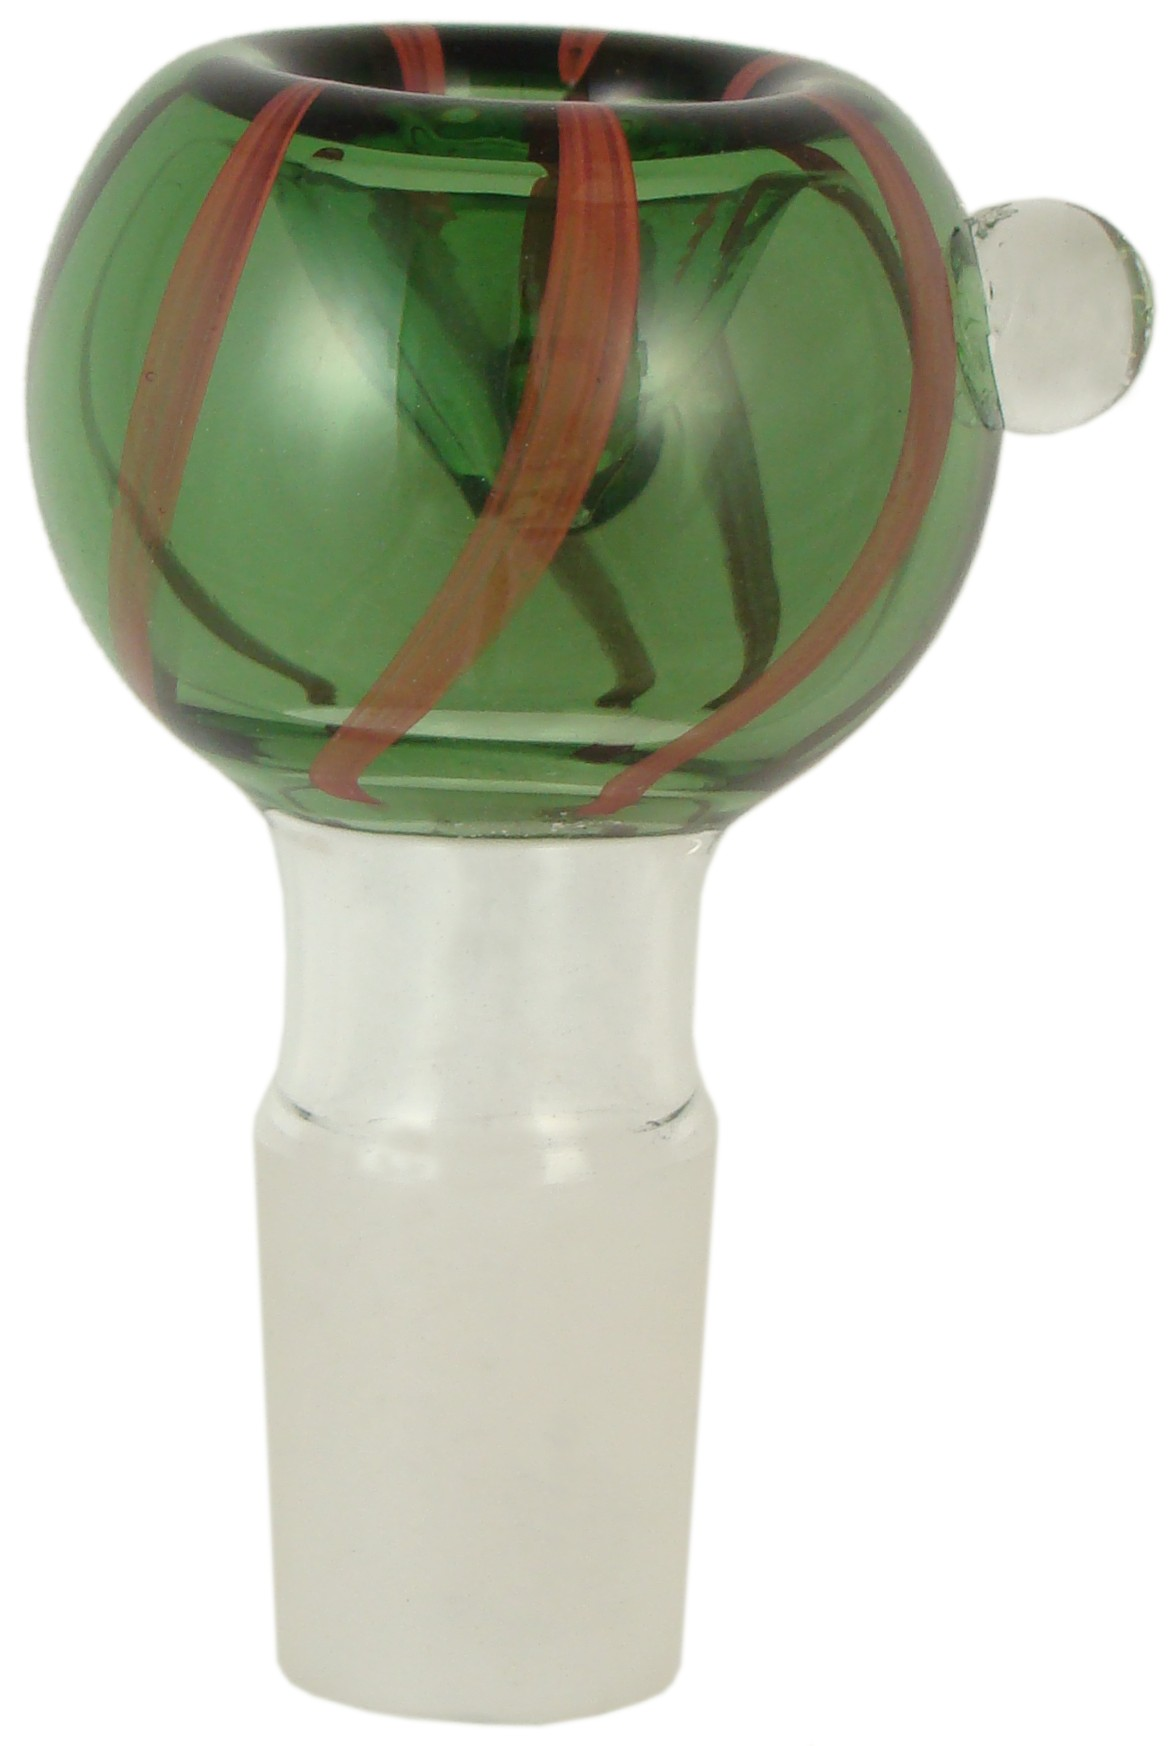 HKB144B - 19mm Green GOG Tobacco Hookah Bowl w/Rod Work & Marble